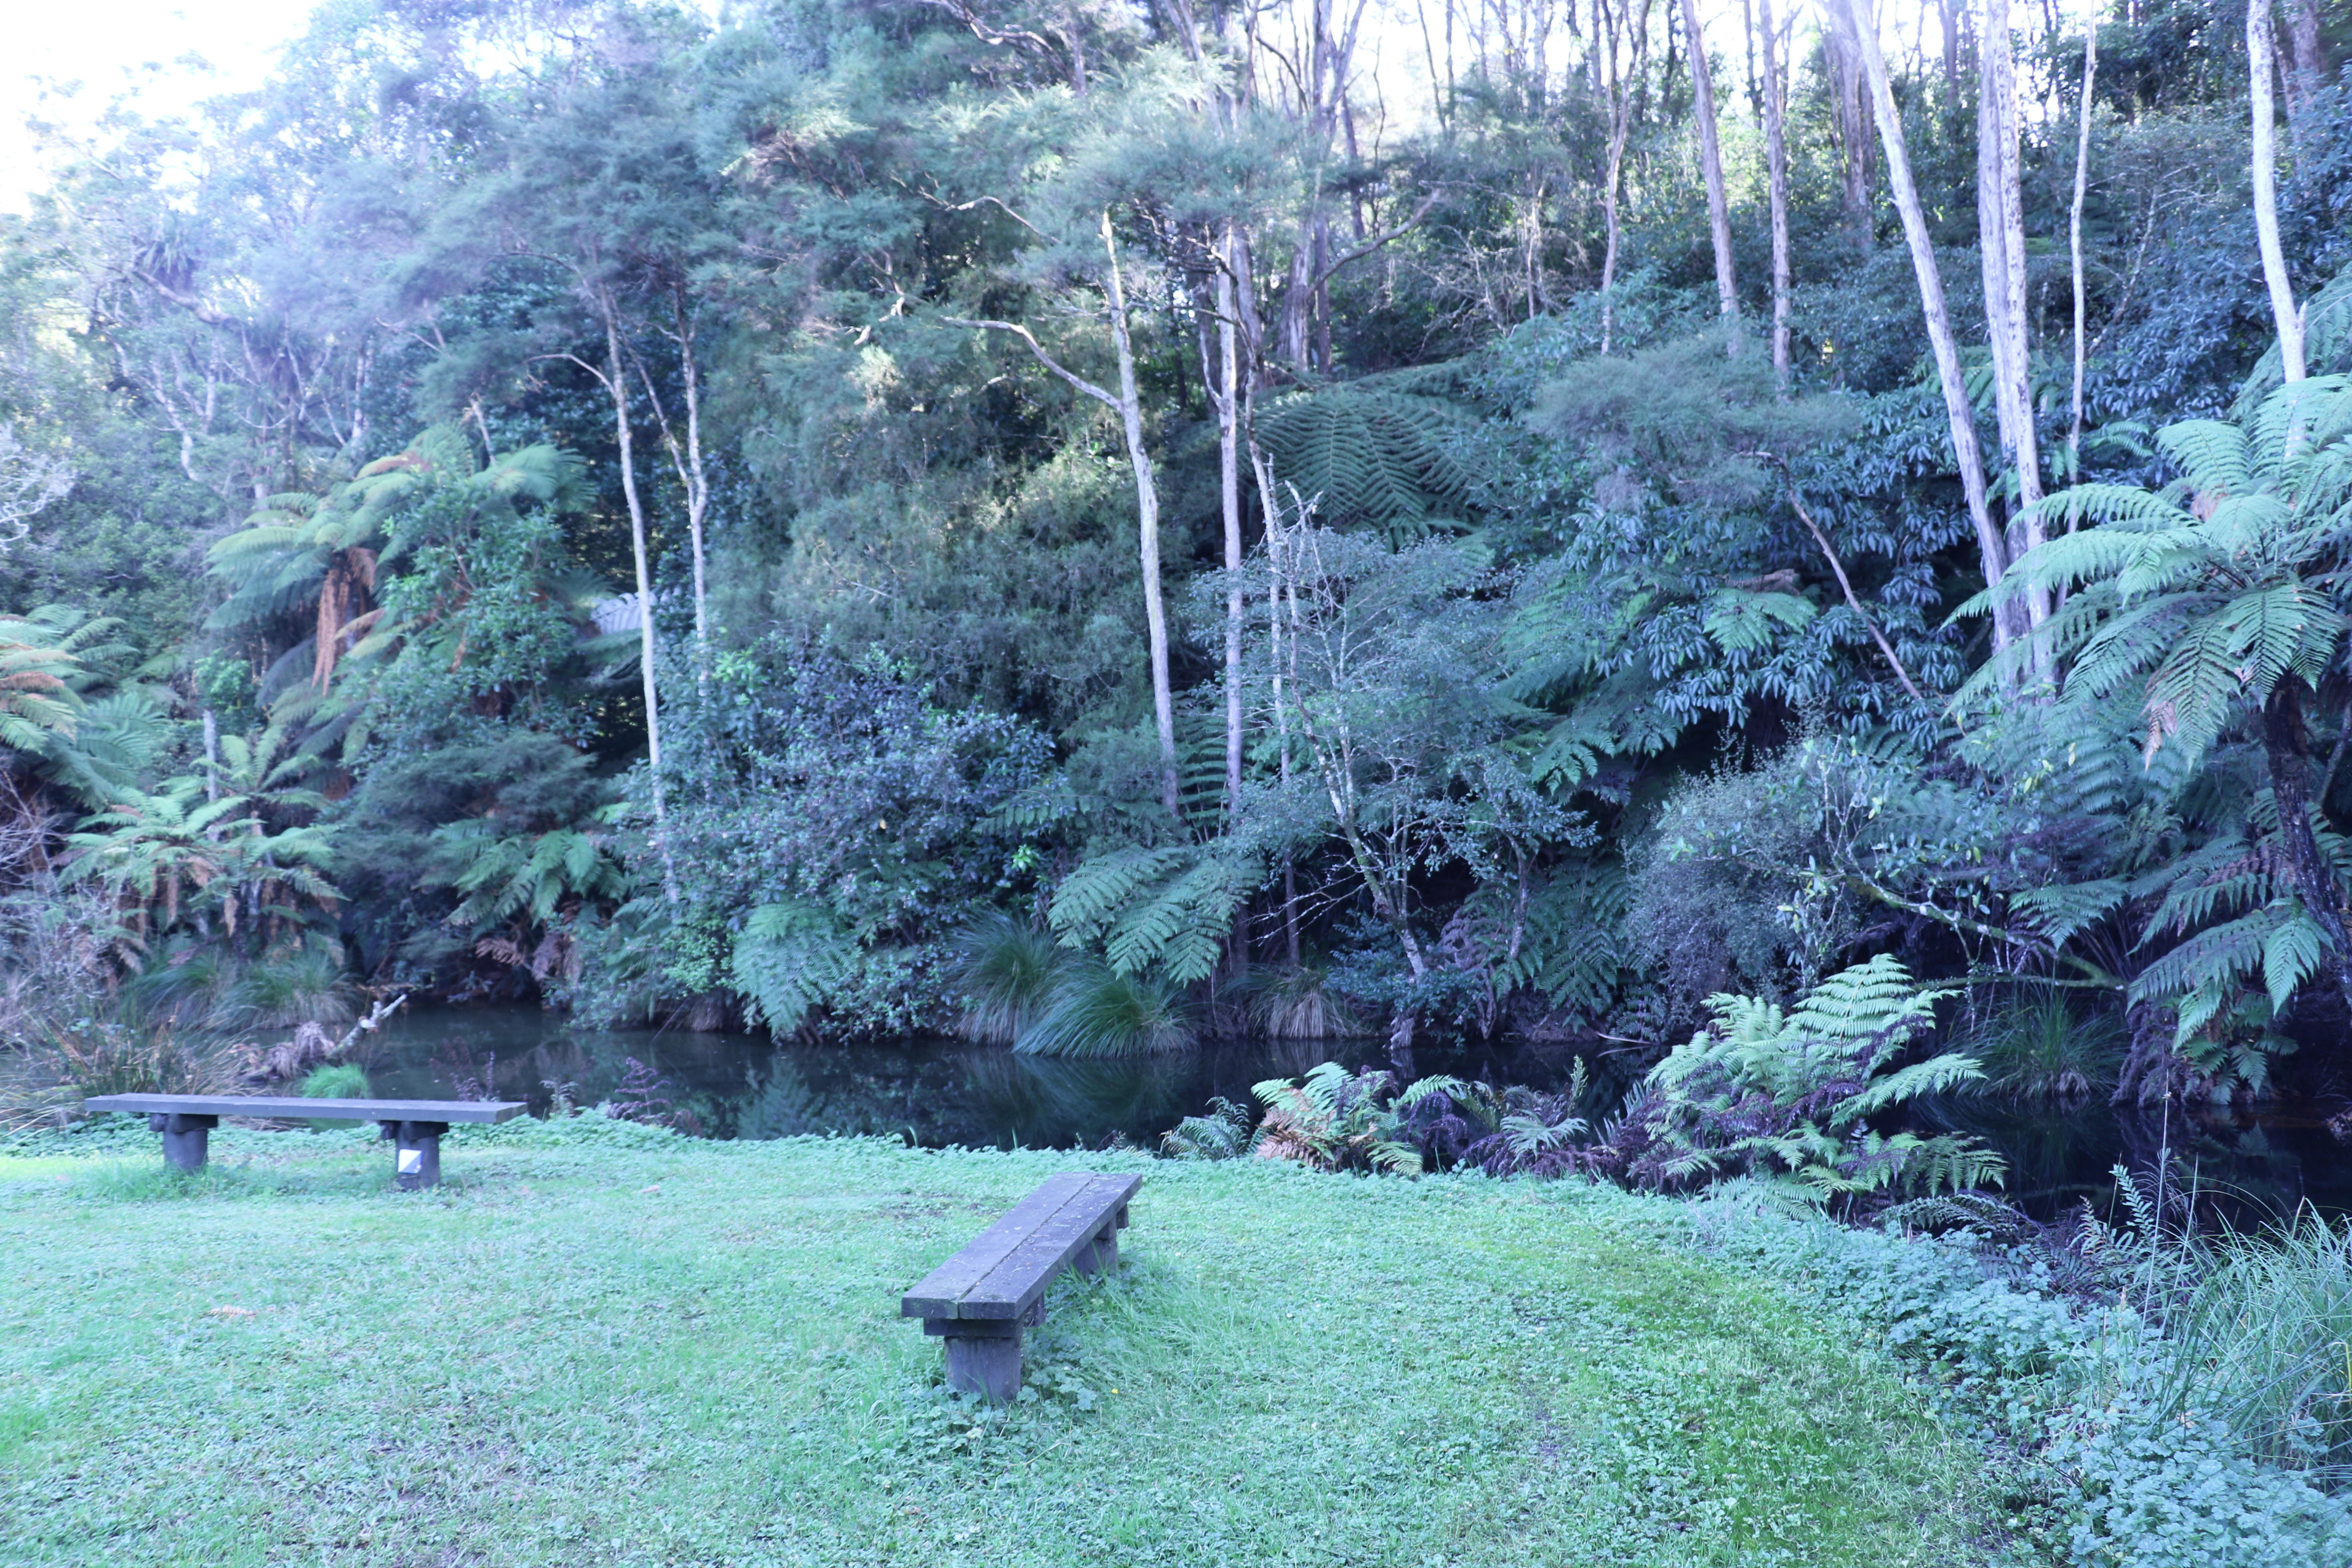 LDS Church-owned camp in New Zealand offers visitors a